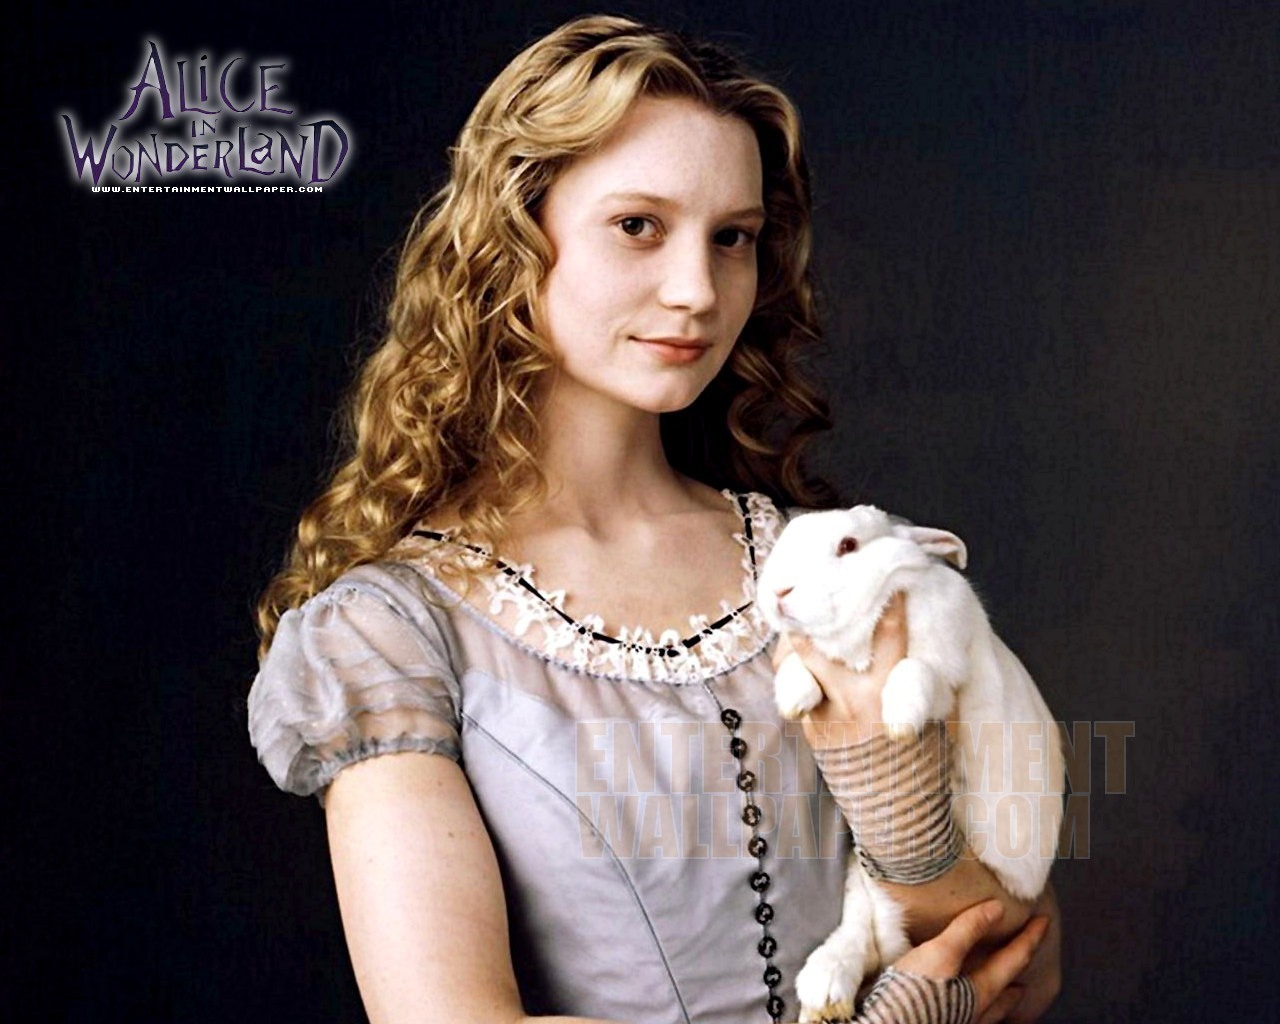 alice in wonderland online 2010